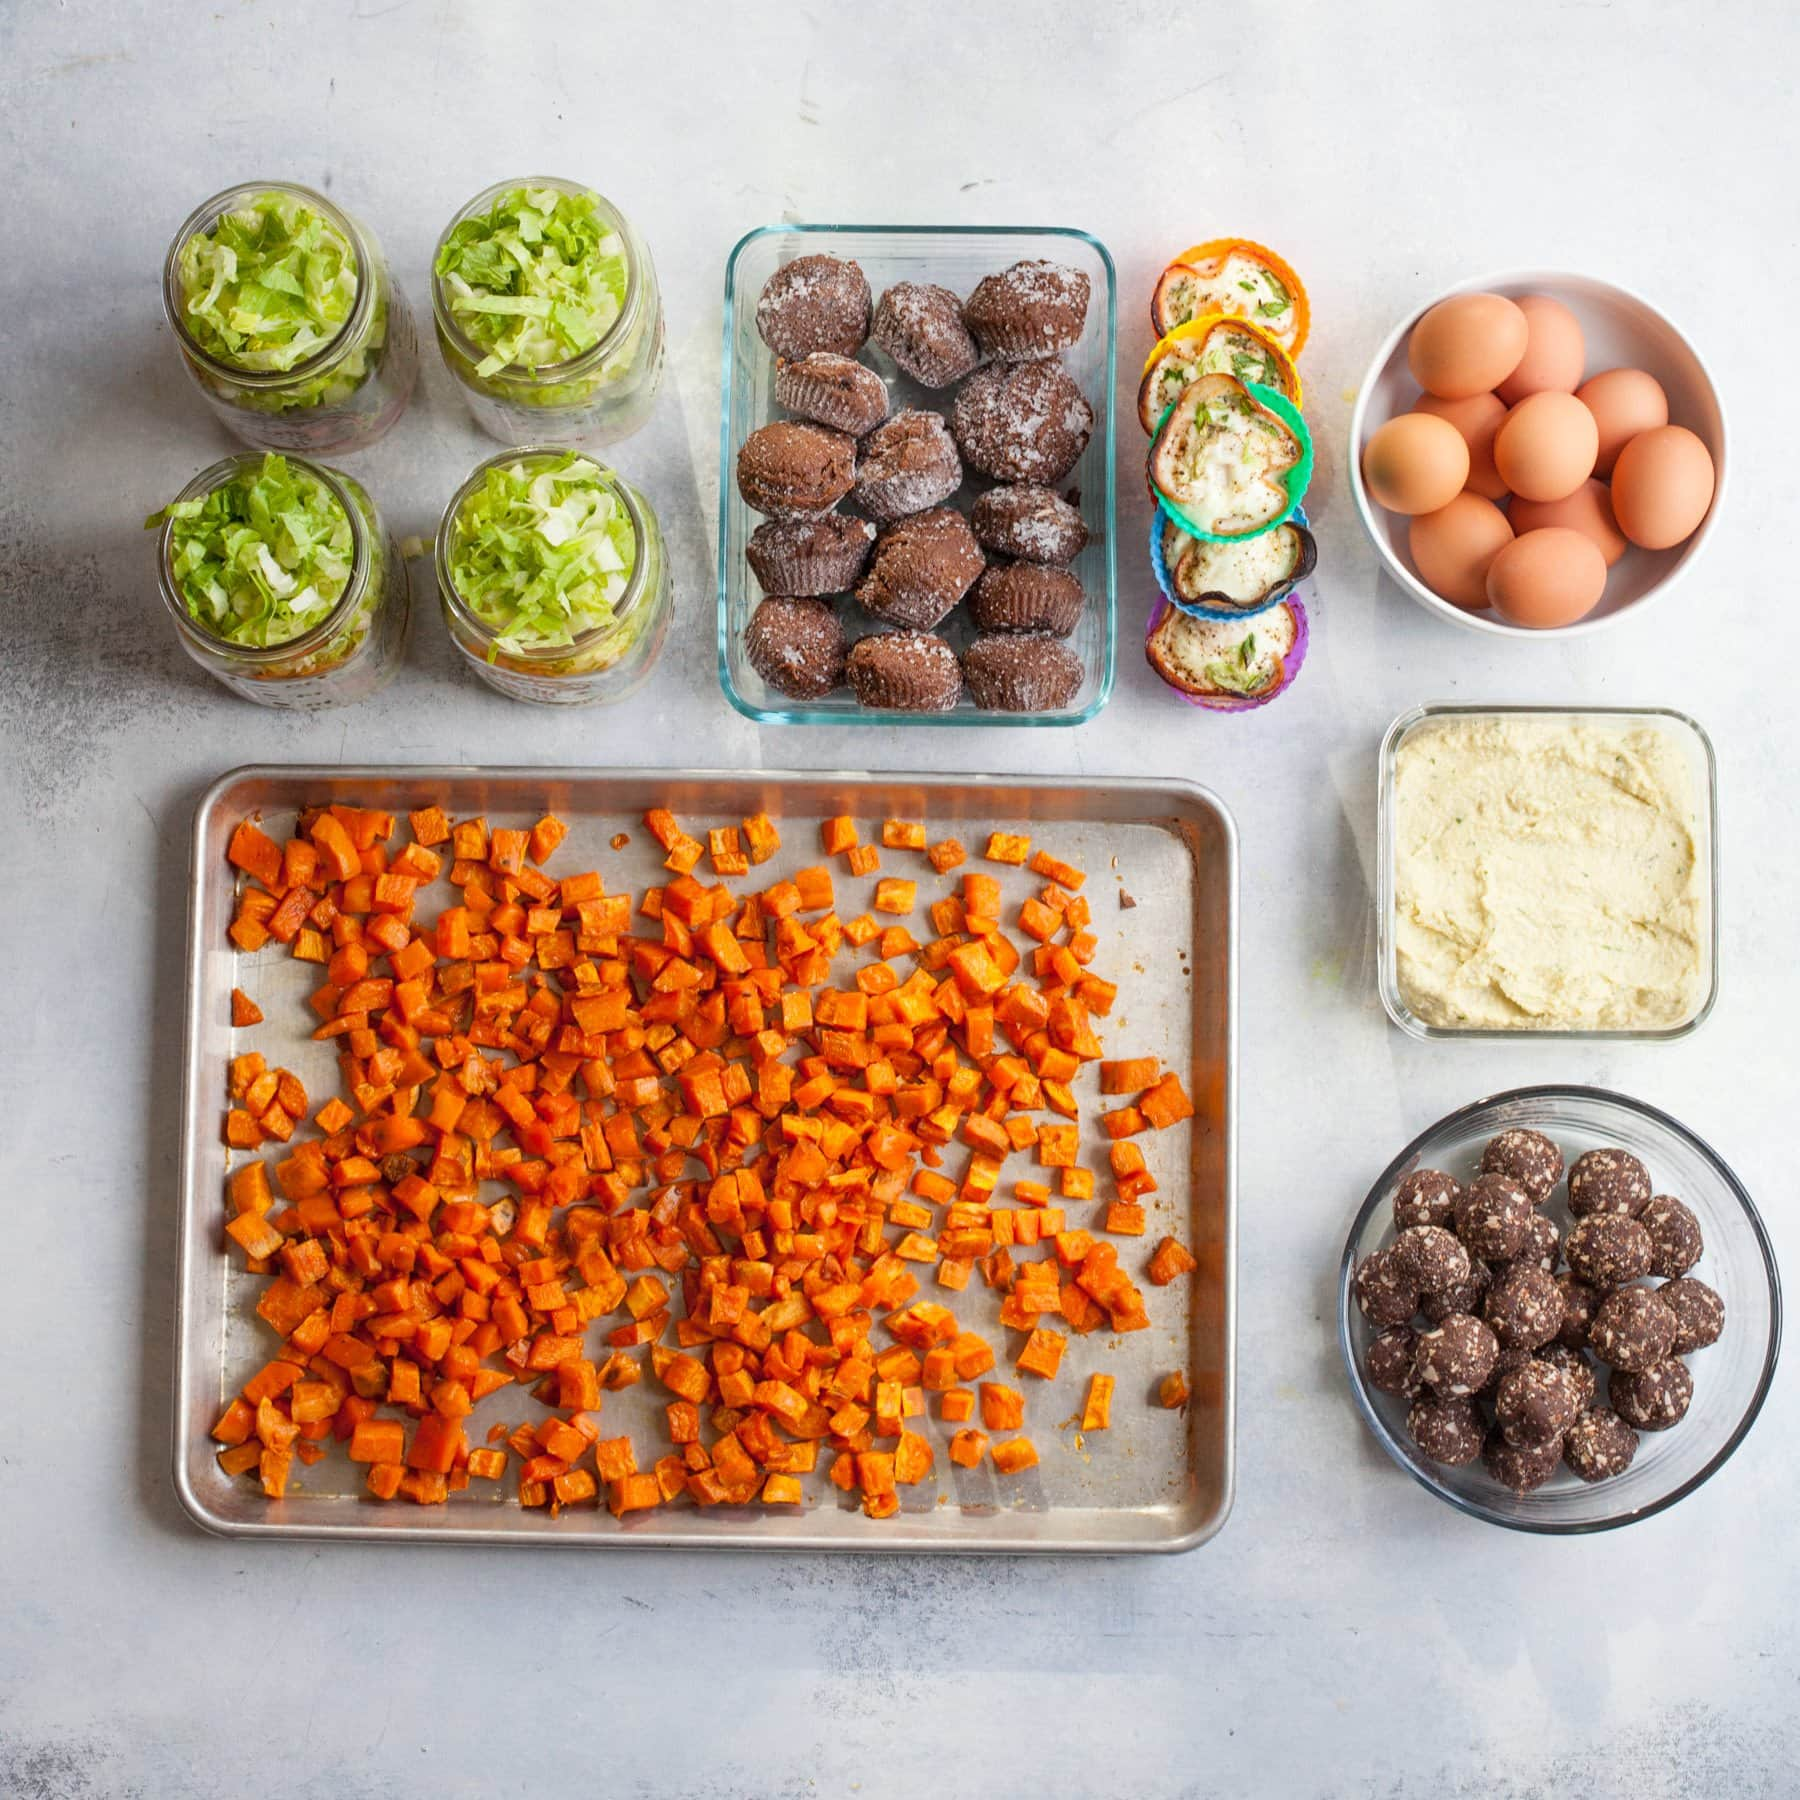 Meal prep components laid out in individual containers - roasted sweet potato cubes, salads in jars, muffins, egg cups, hard boiled eggs, hummus, and date bites.